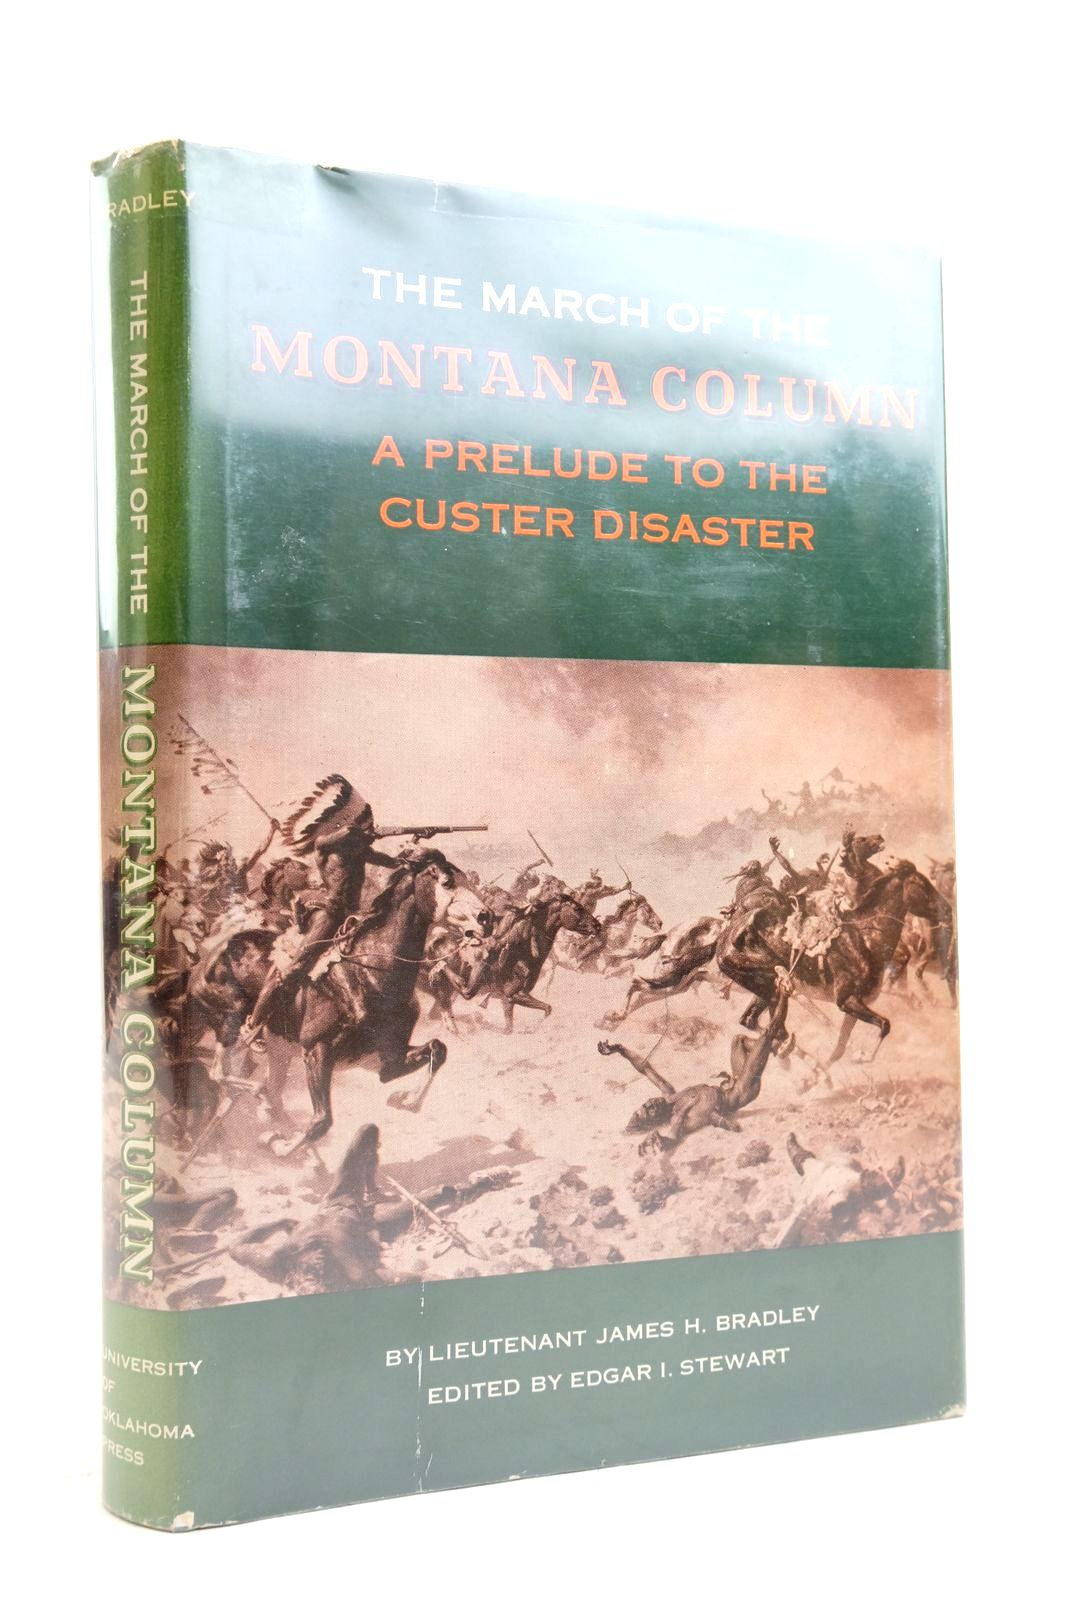 Photo of THE MARCH OF THE MONTANA COLUMN written by Bradley, James H. Stewart, Edgar I. published by University of Oklahoma Press (STOCK CODE: 2135387)  for sale by Stella & Rose's Books